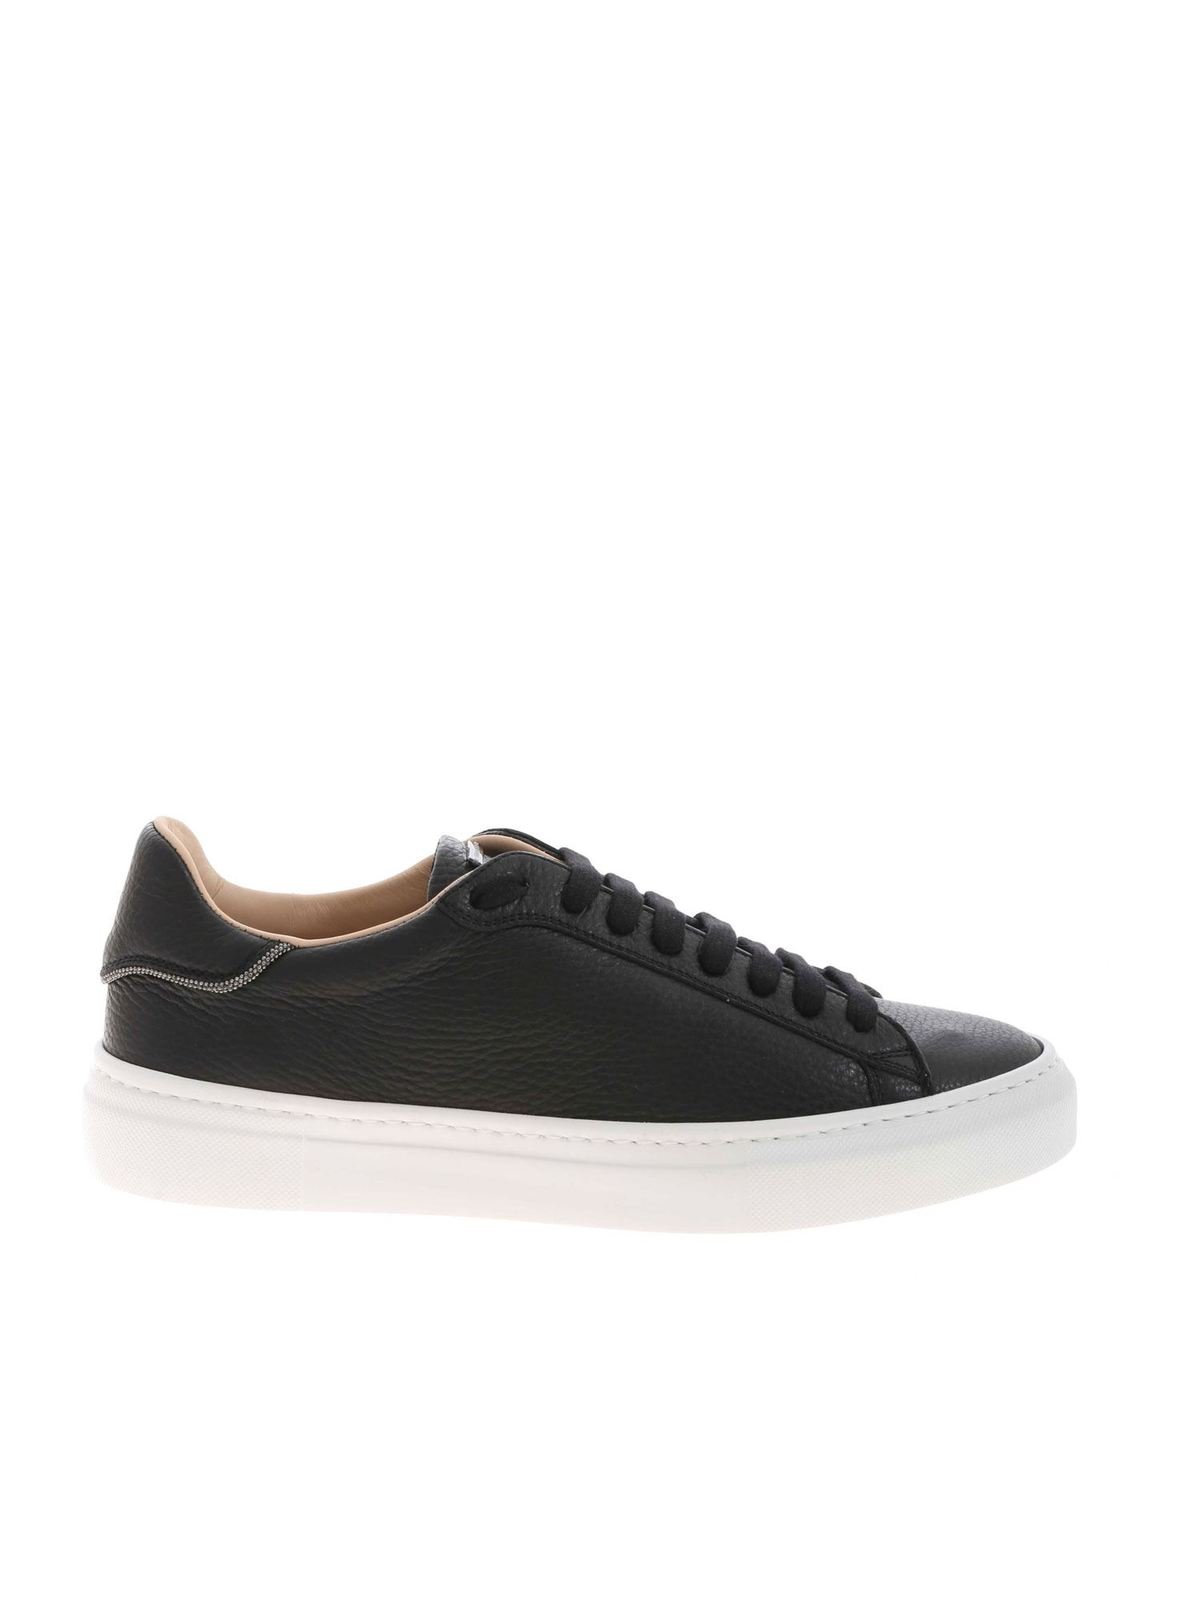 Fabiana Filippi MICRO BEADS SNEAKERS IN BLACK